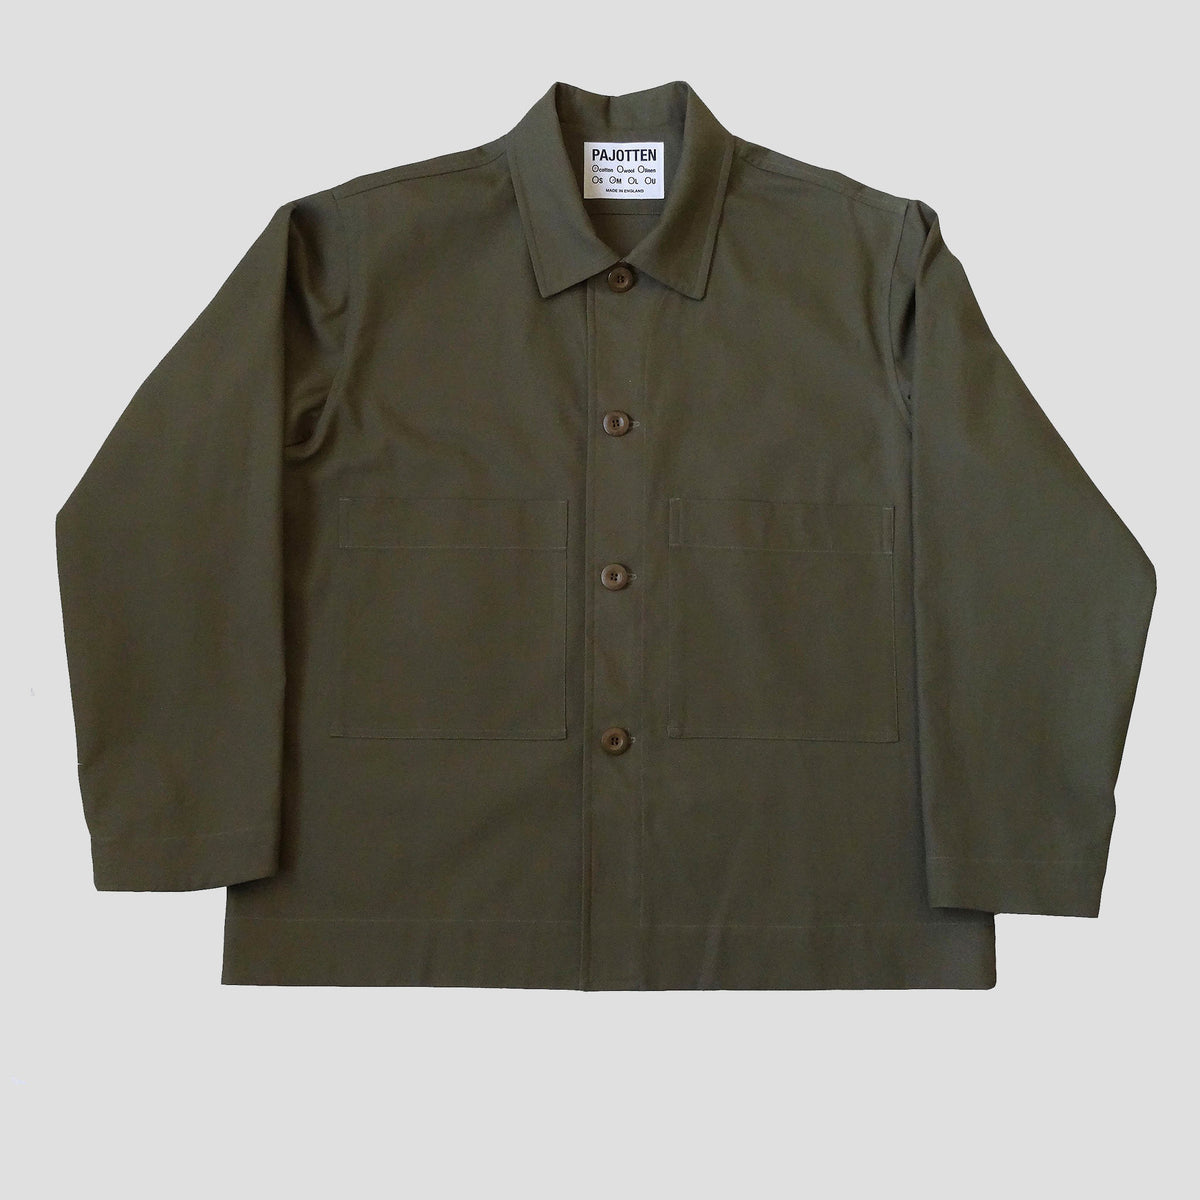 menswear workers jacket insane green  brushed cotton canvas